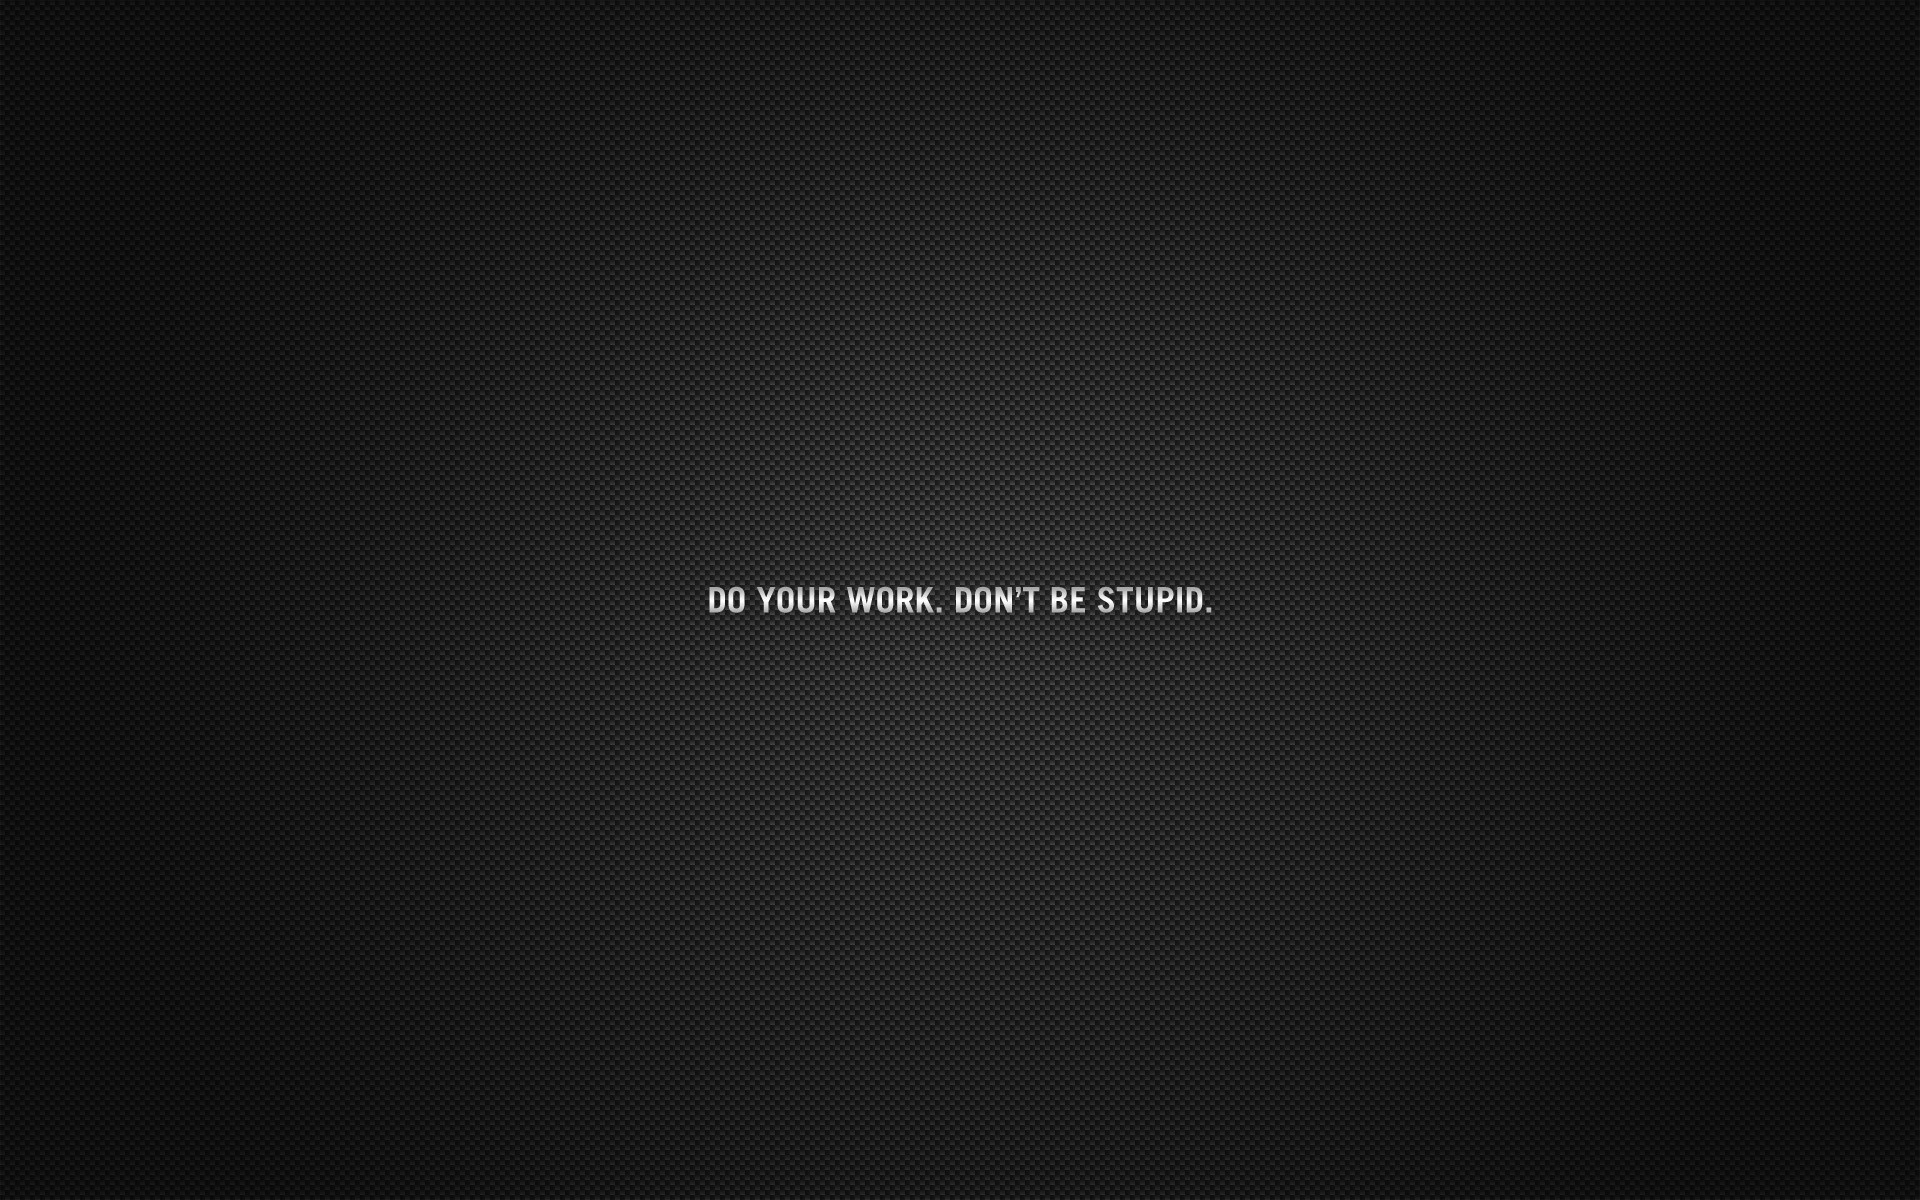 do your work dont be stupid background wallpaper